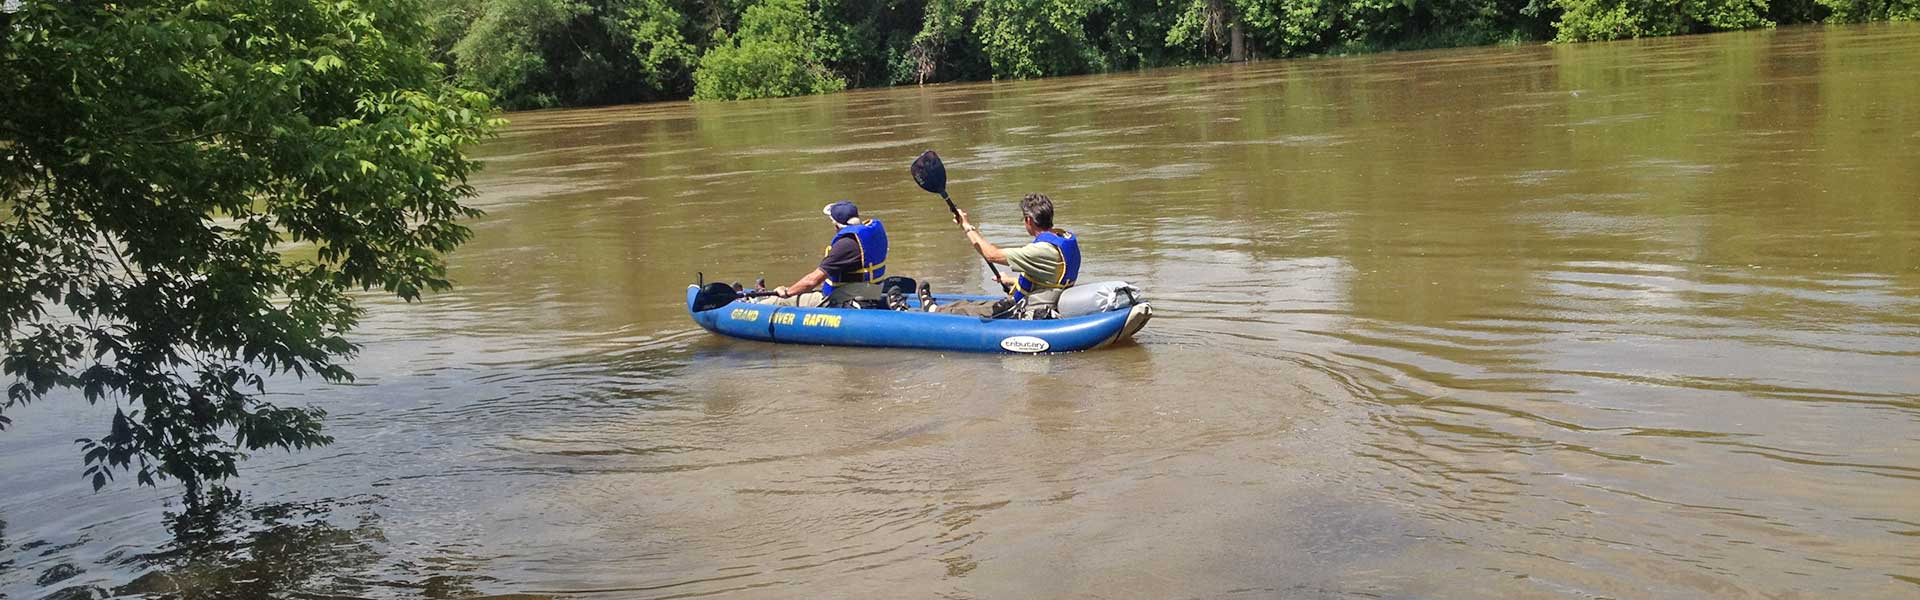 Learn to Kayak on the Grand River in non tip kayaks